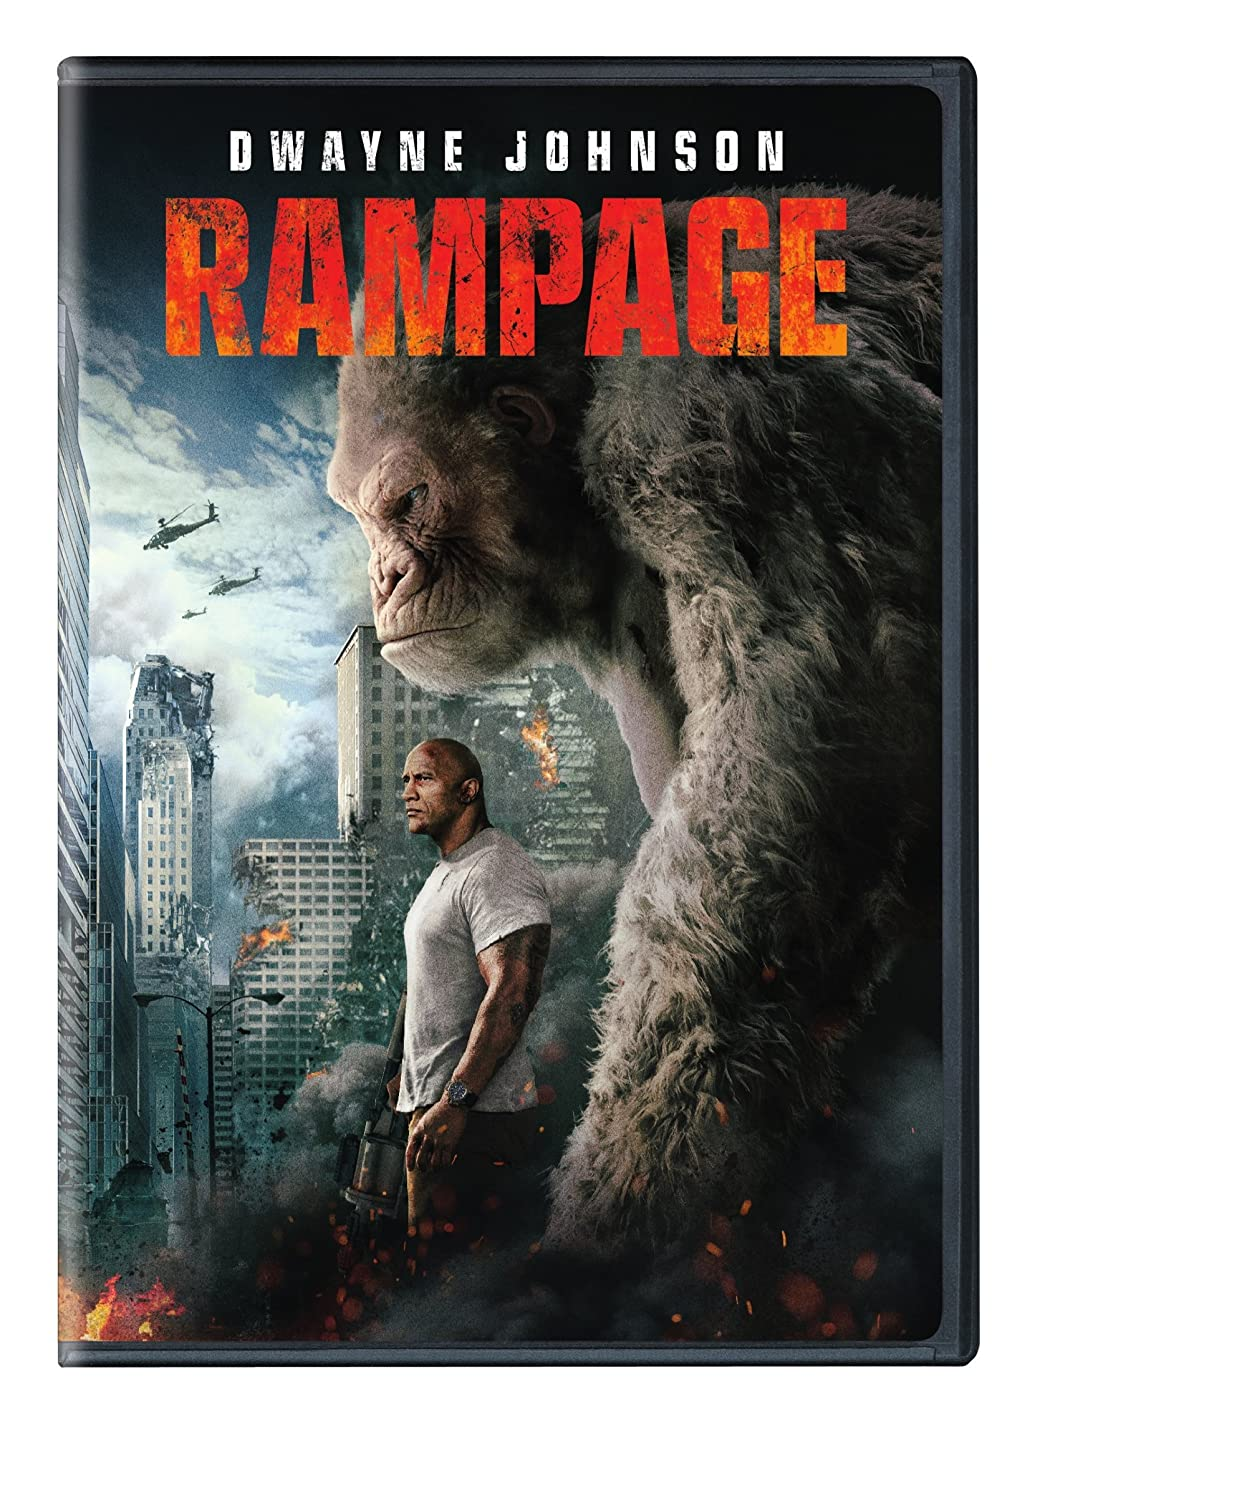 Rampage (2018) starring Dwayne Johnson, Naomie Harris, Jeffrey Dean Morgan